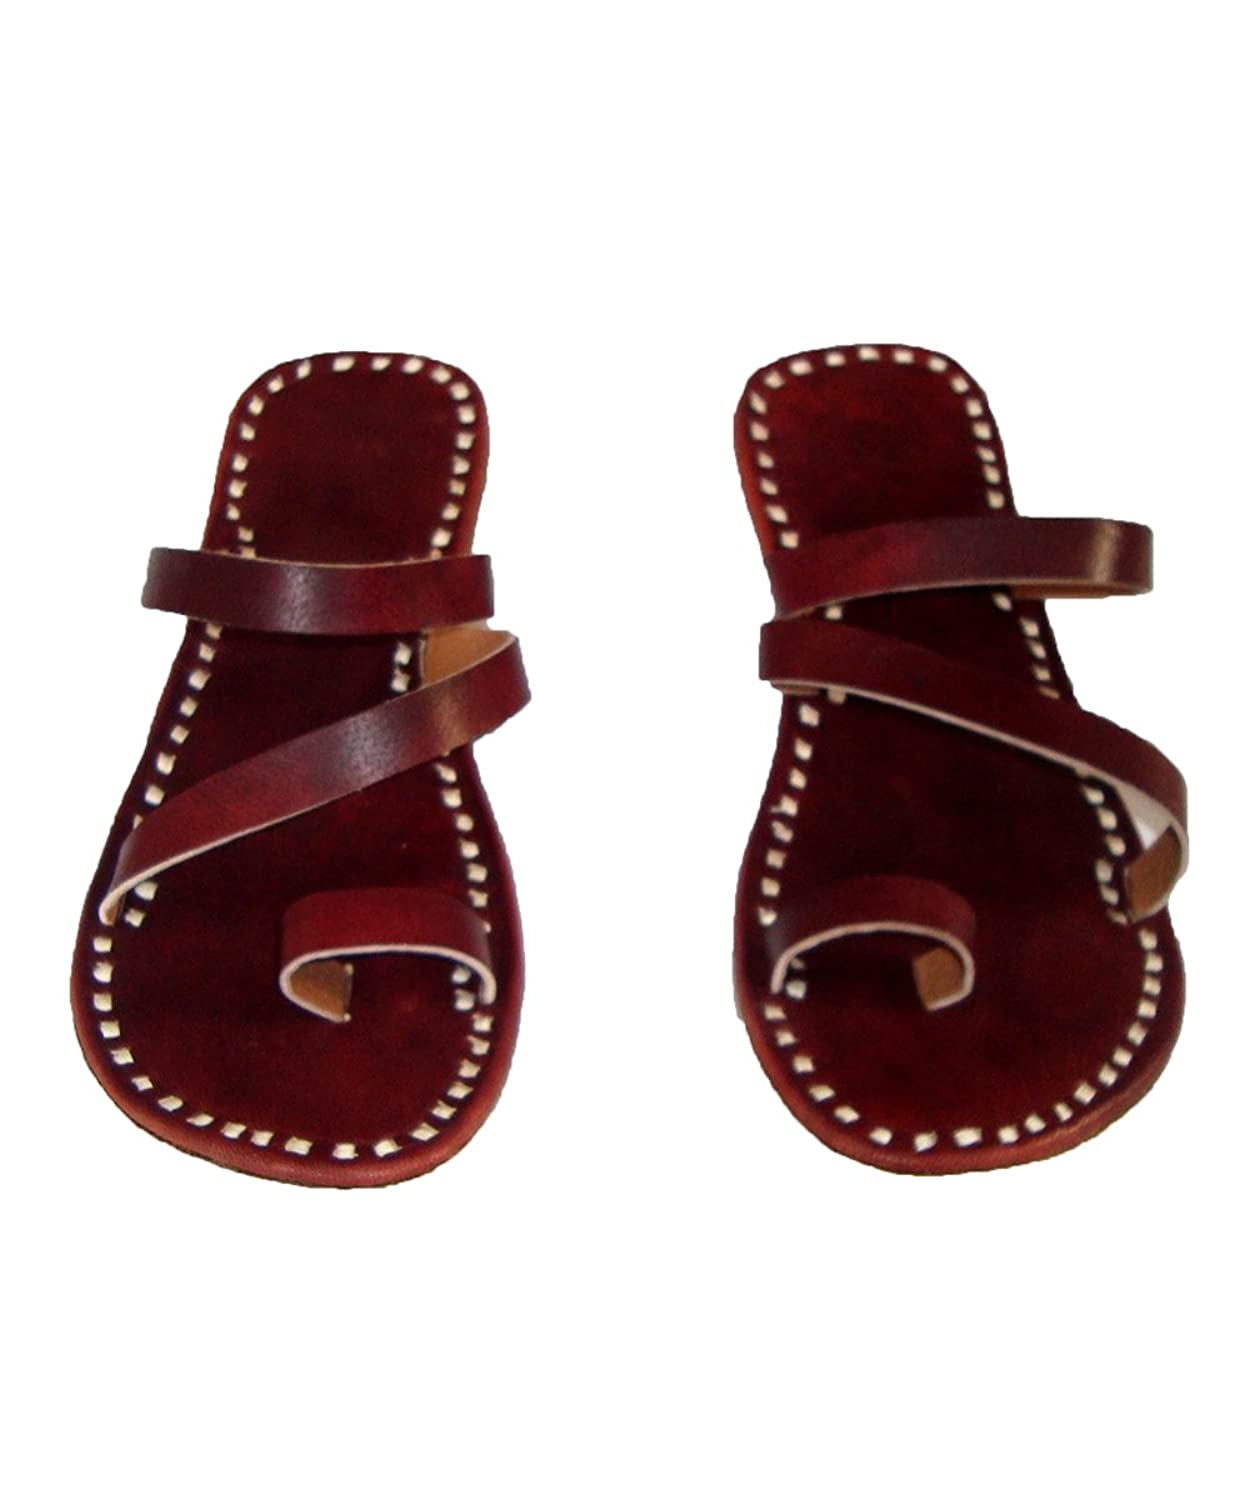 COFFEE LEATHER SHOES Indian sandals Online shoes Leather Shoes Cheap shoes flats free shipping